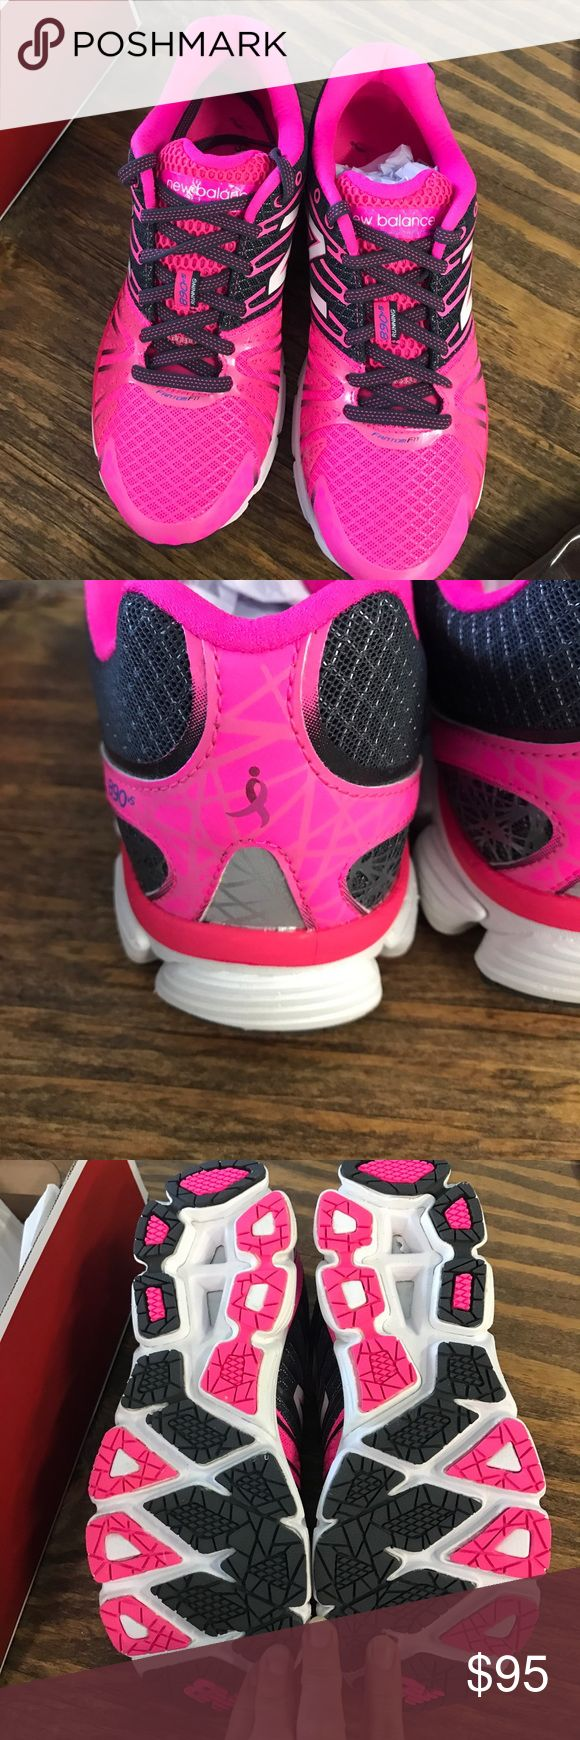 NWT size 8.5 limited edition Susan G Komen shoes NWT limited edition Susan G Komen New Balance brand size 8.5 women's running shoe. This is a rare one of a kind shoe! Run in your race for a cure in style! New Balance Shoes